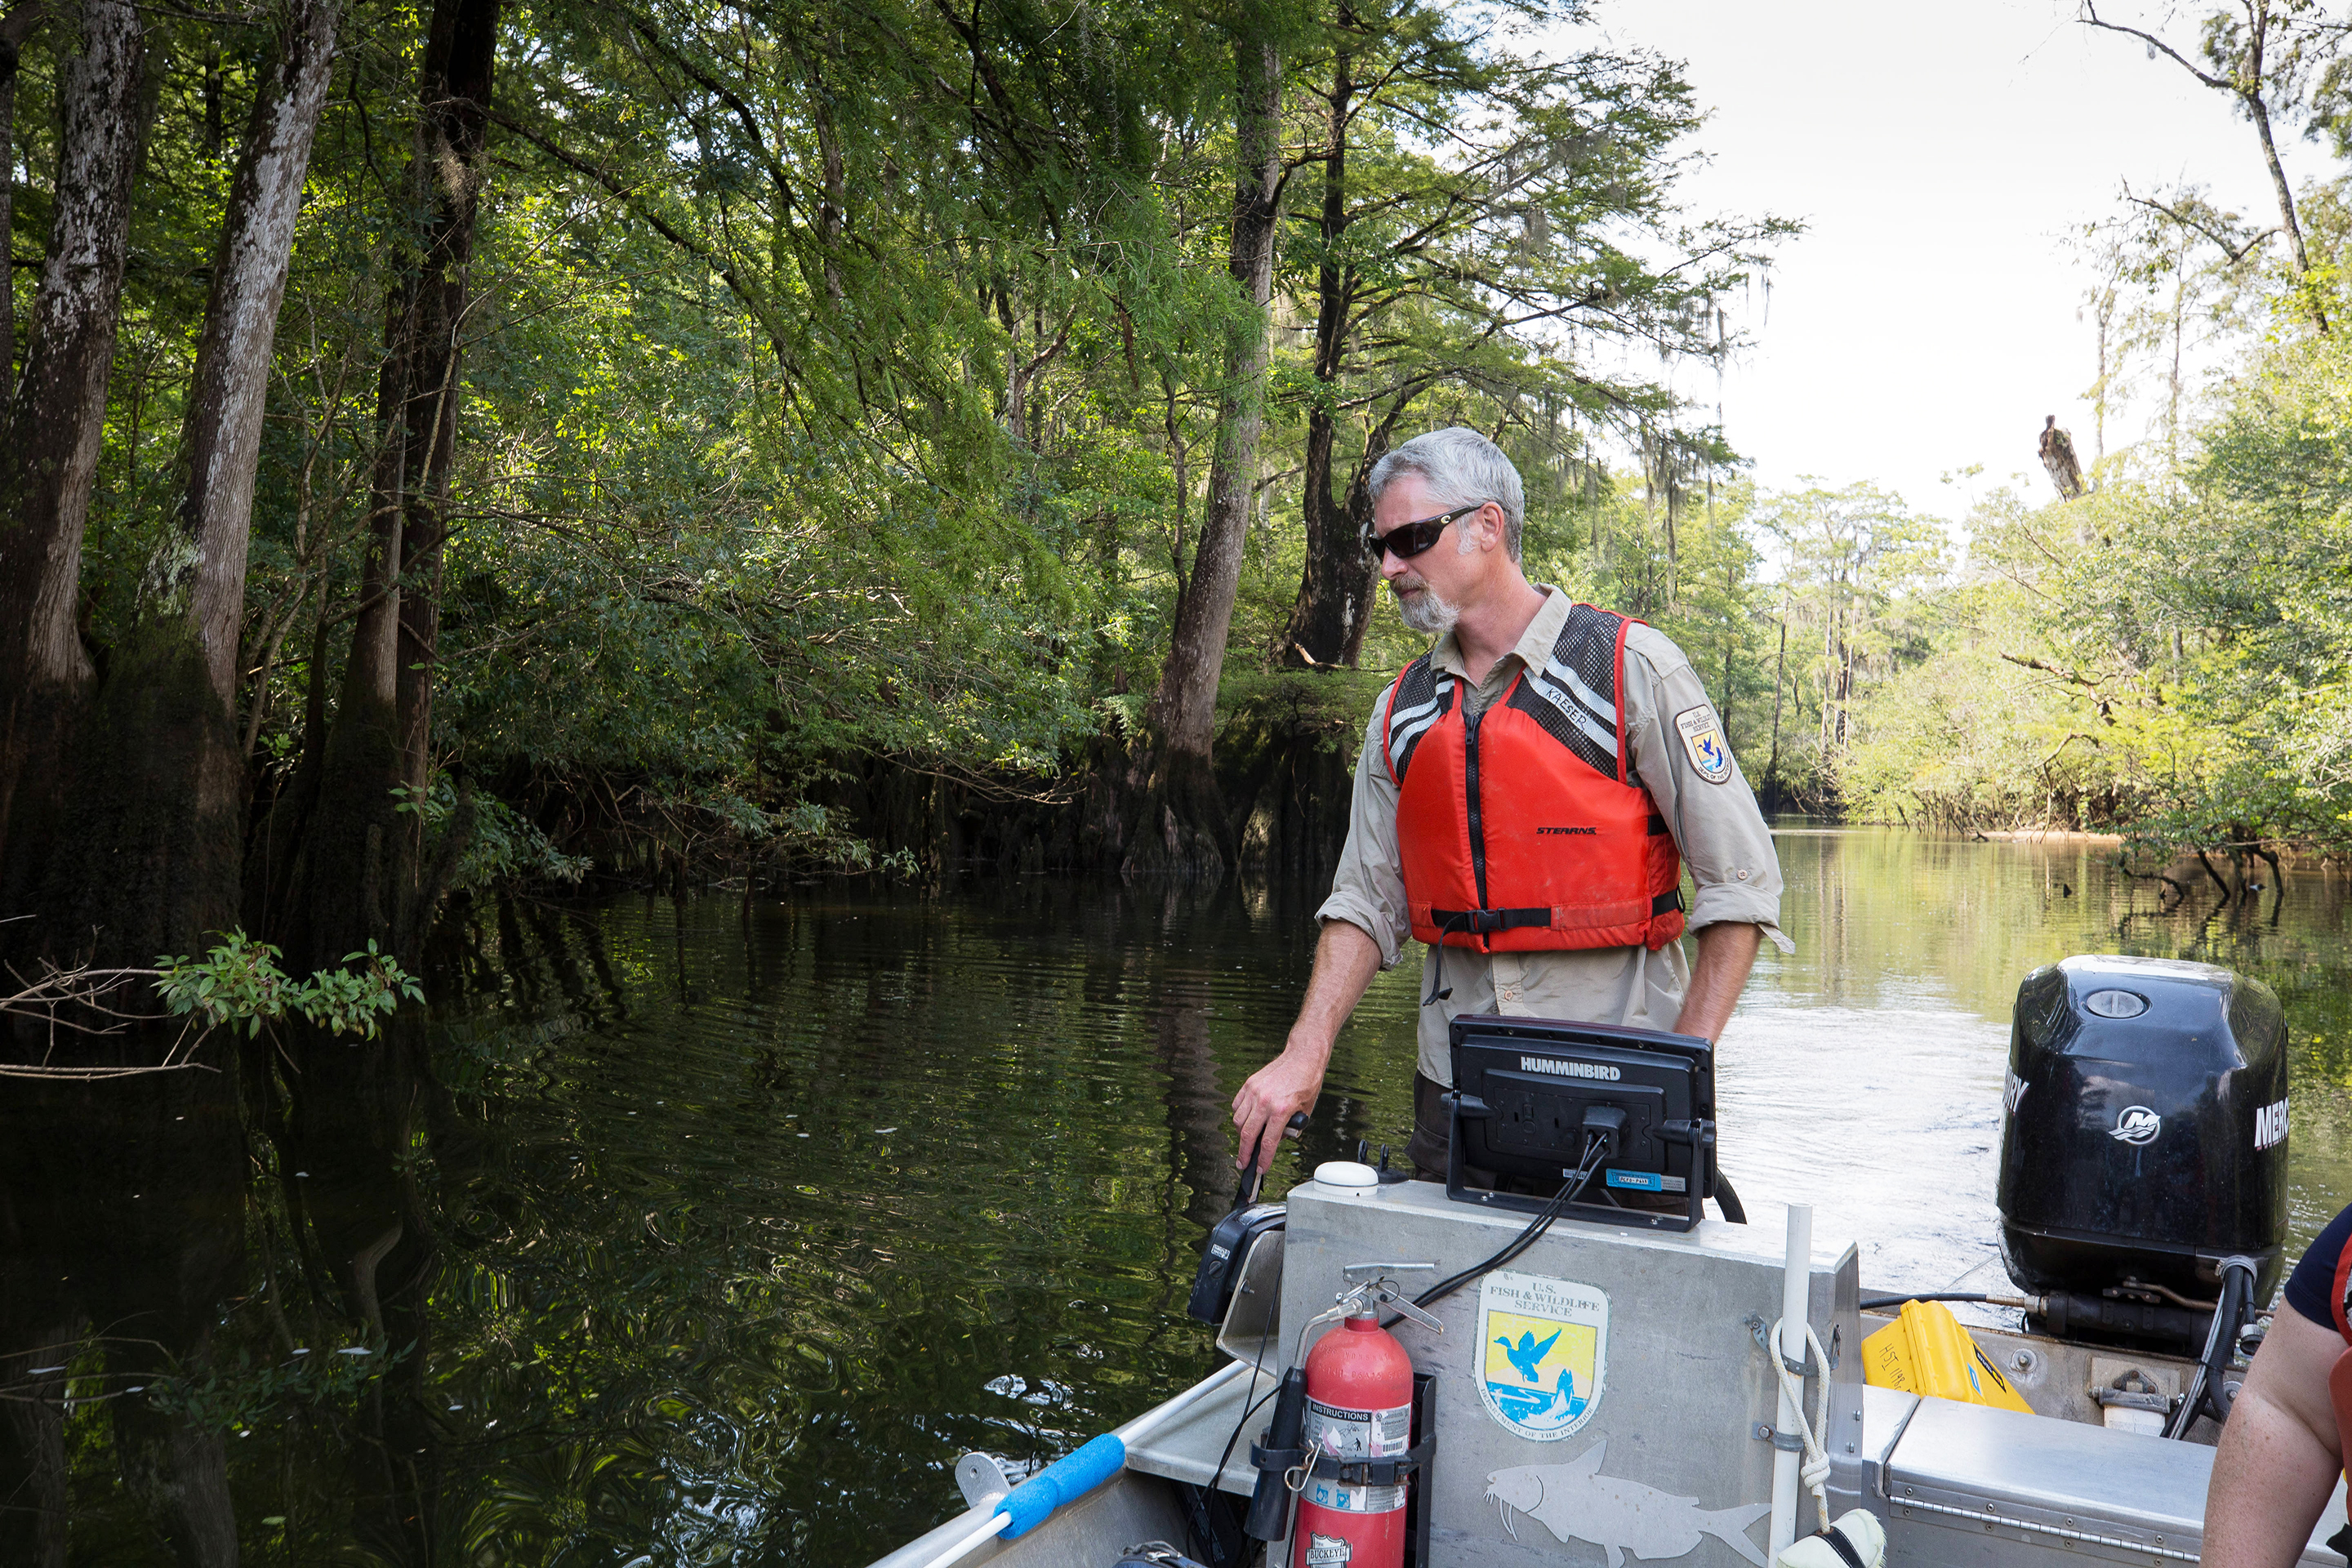 USFWS biologist piloting a boat looking for Gulf Sturgeon in their river habitat.